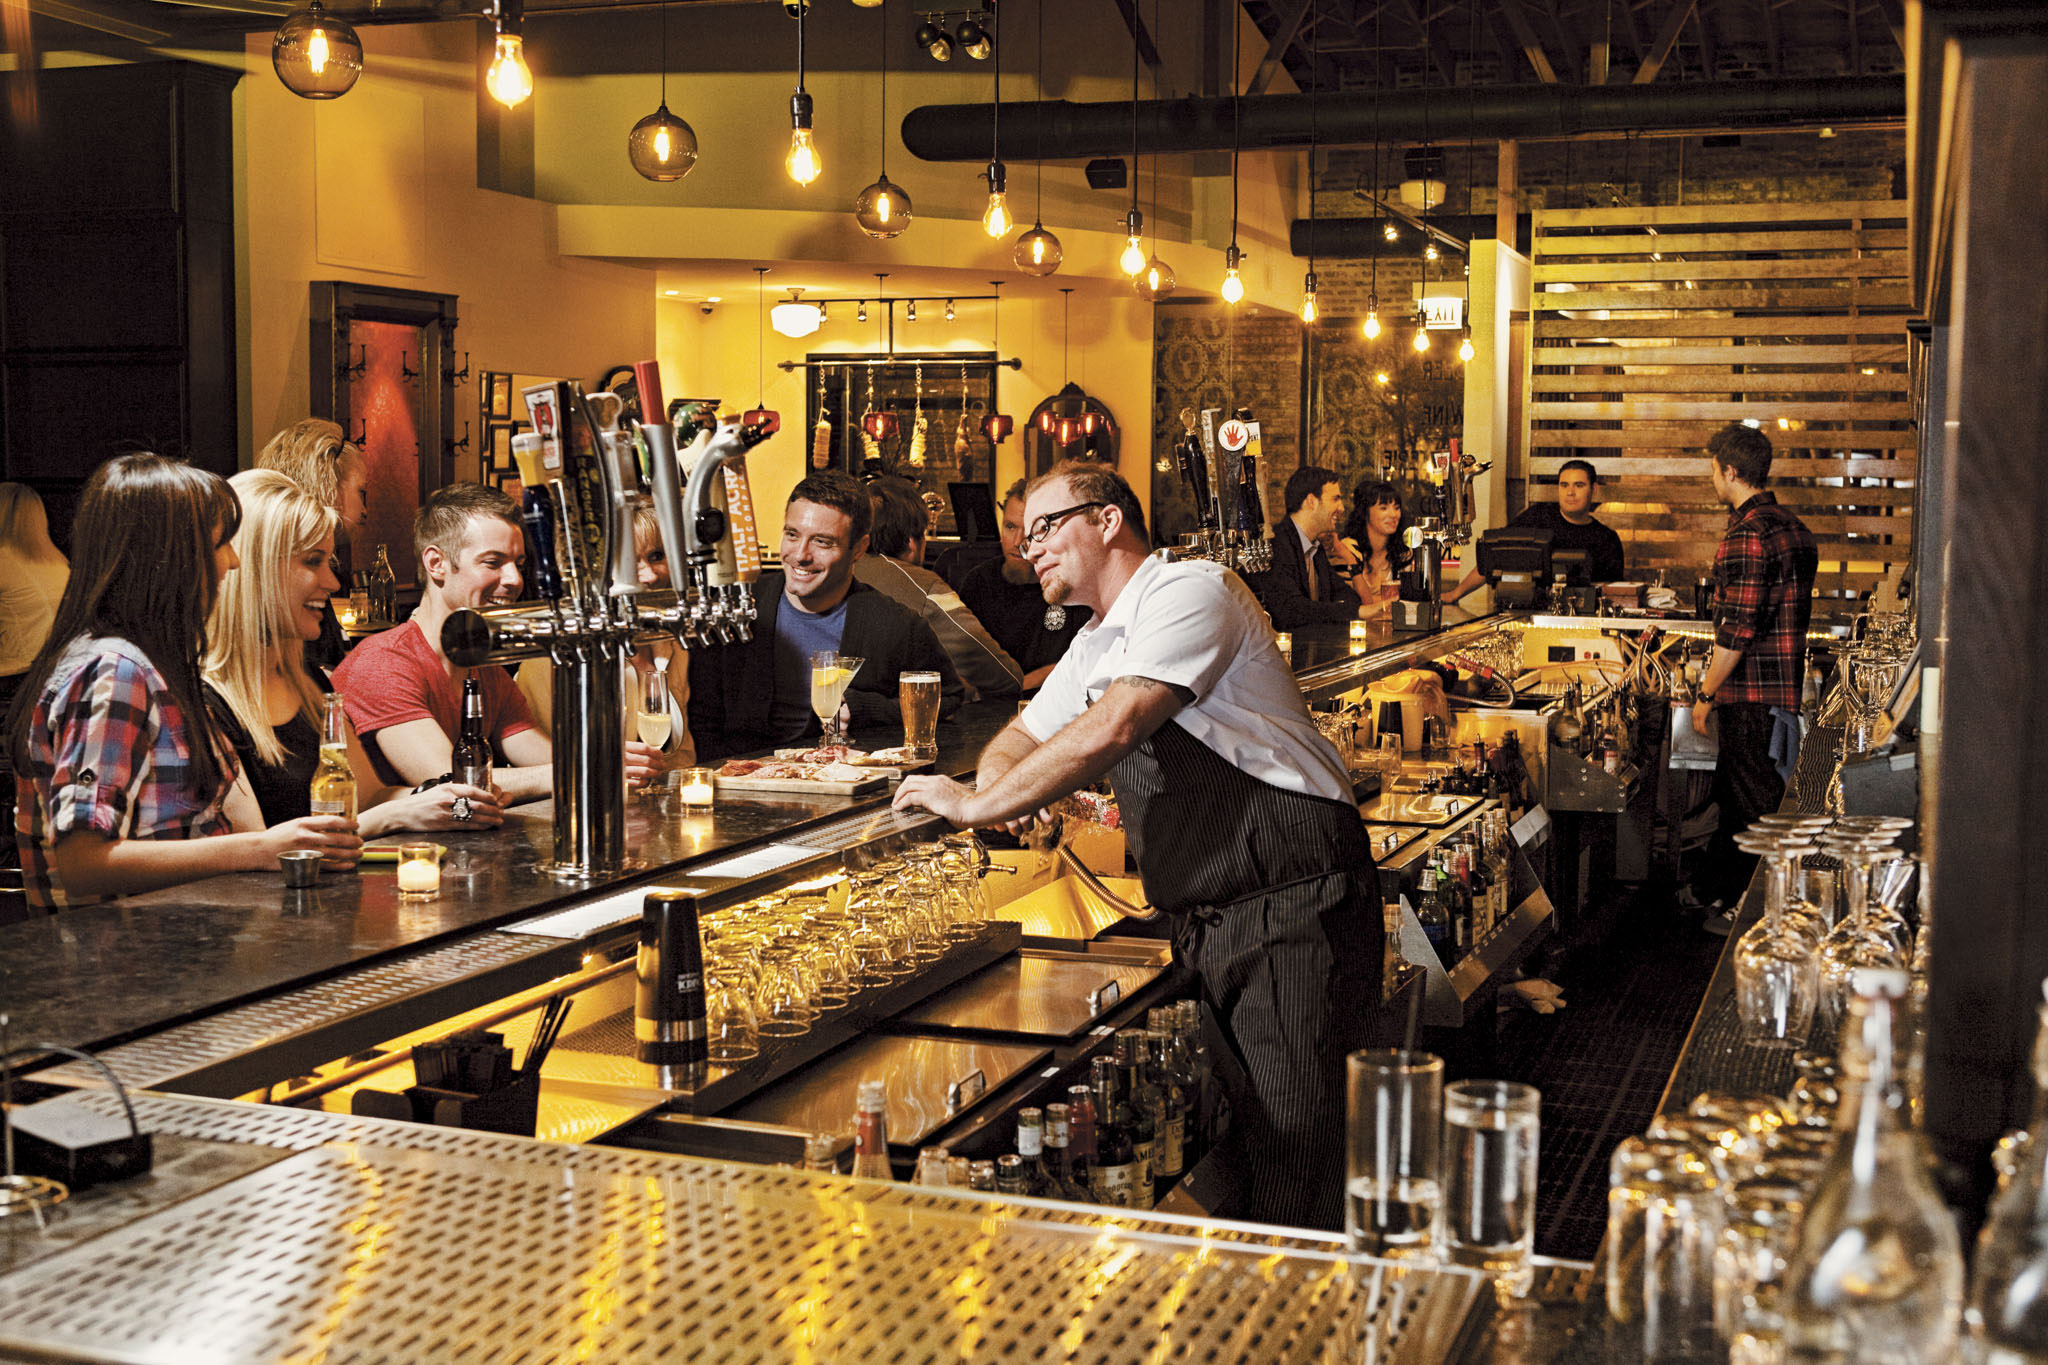 Best Single Bars in Chicago Where to Meet New People & Hook Up - Thrillist